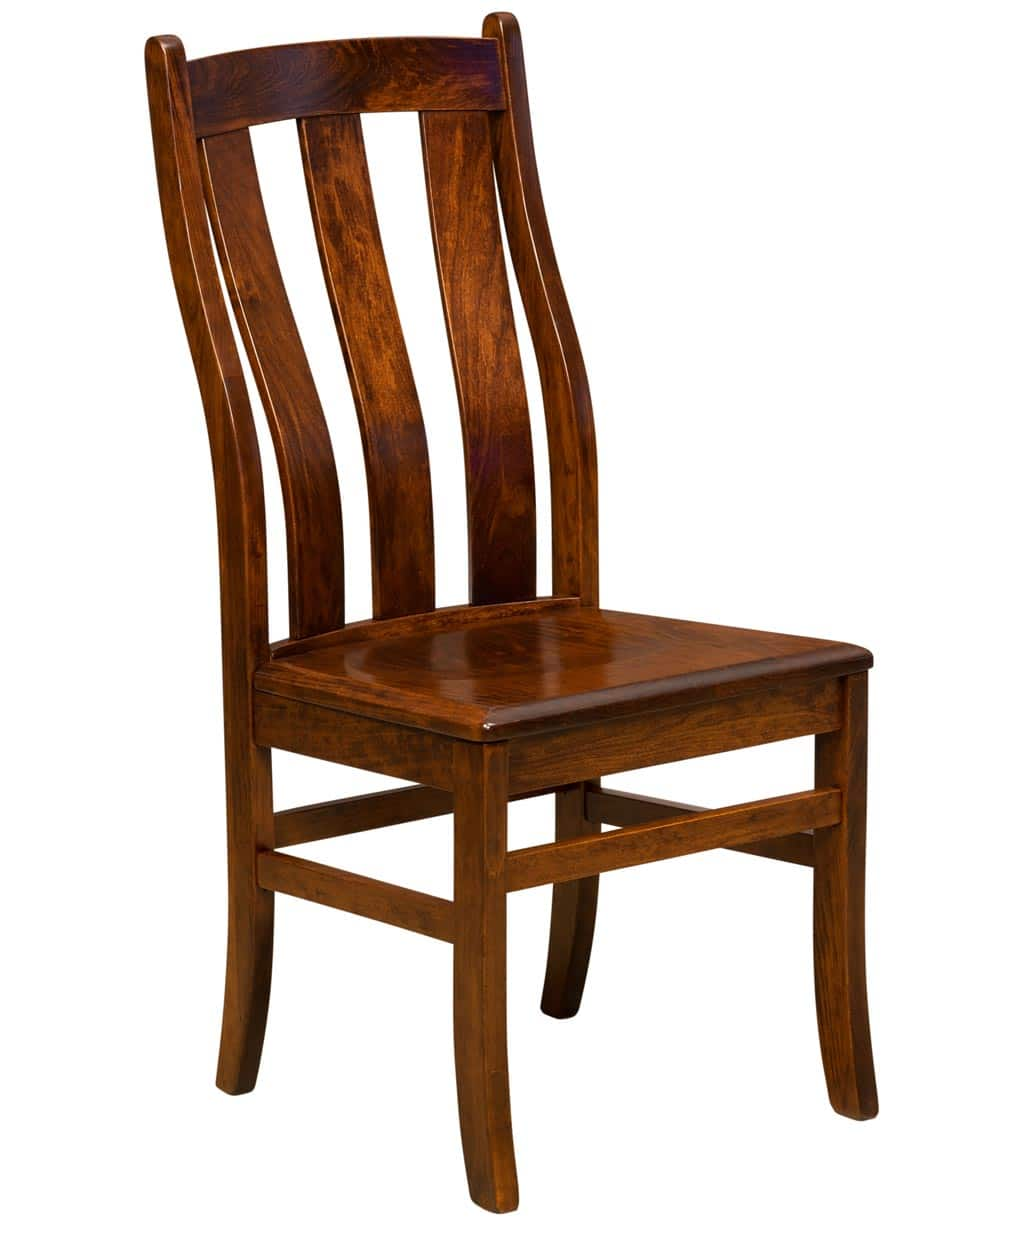 Dining chairs direct chair amish furniture